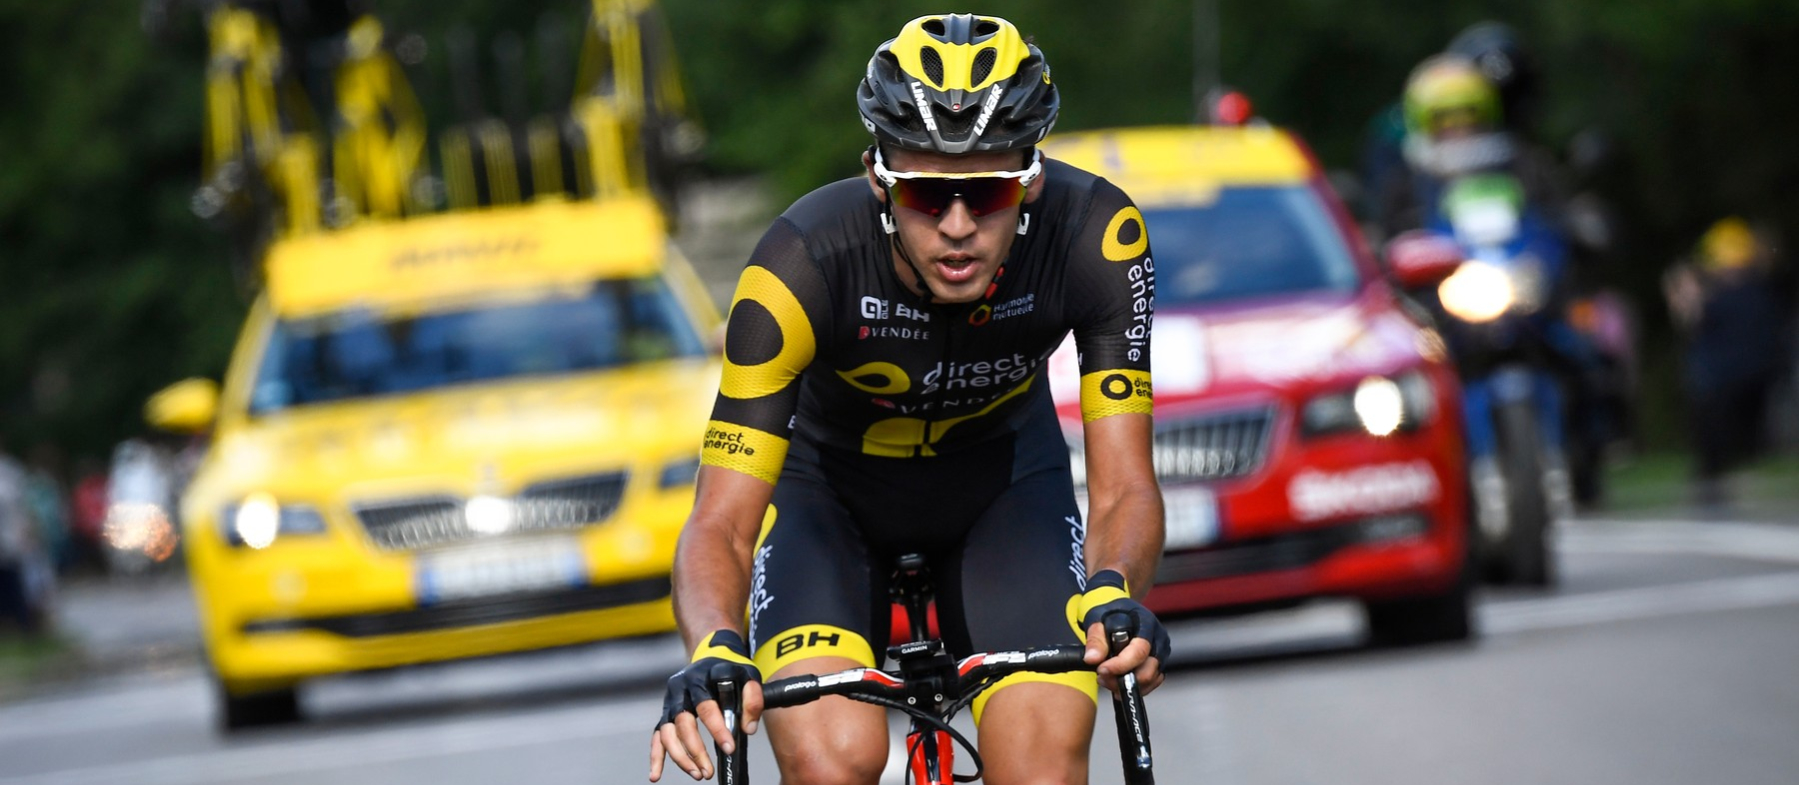 Tour de France Stage 8 Results  Calmejane Takes the Win - WeLoveCycling  magazine 0d80a83a6